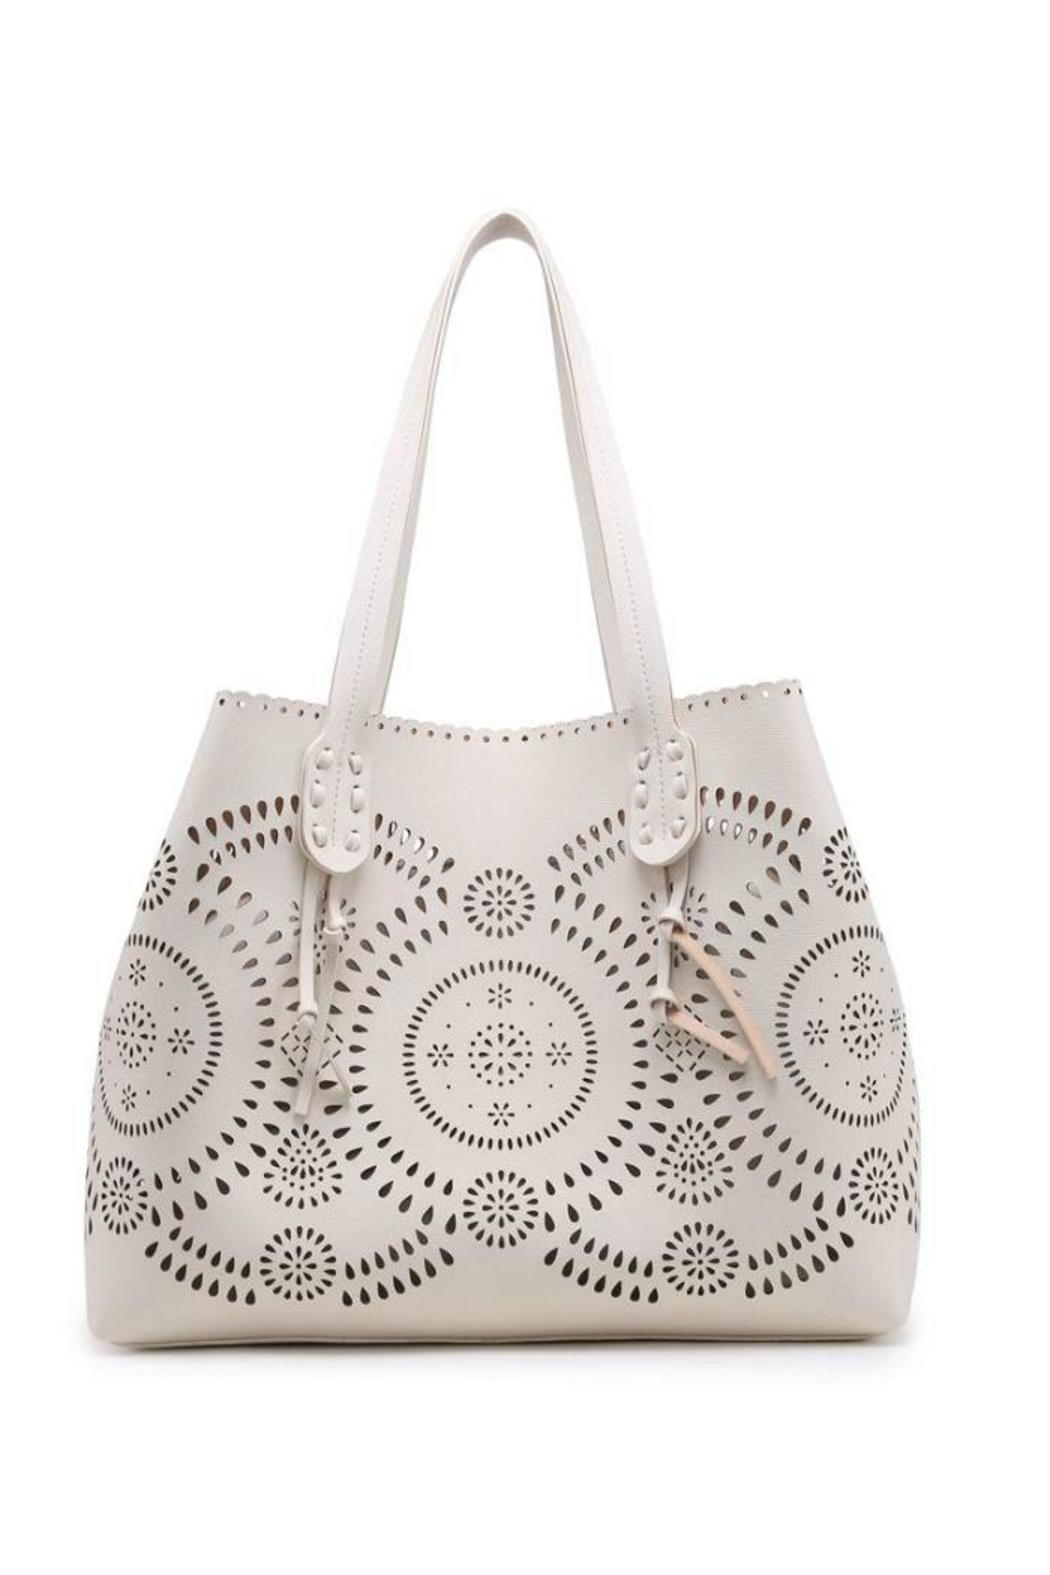 Urban Expressions Havana Tote from New Hampshire by Let s Glow ... c1367e8d38